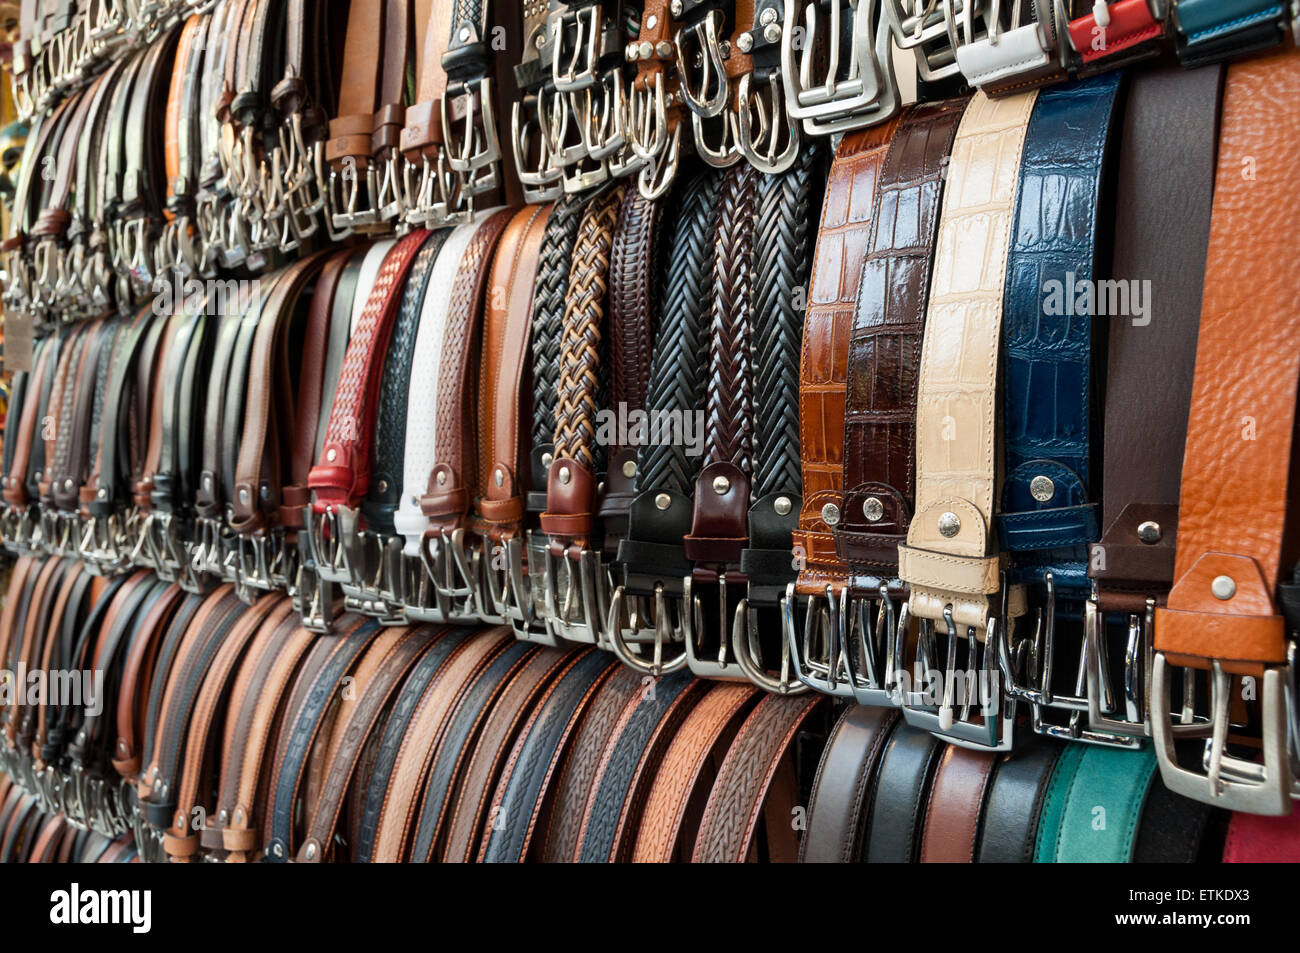 Belts seller in the Mercato Centrale in Florence, Italy - Stock Image